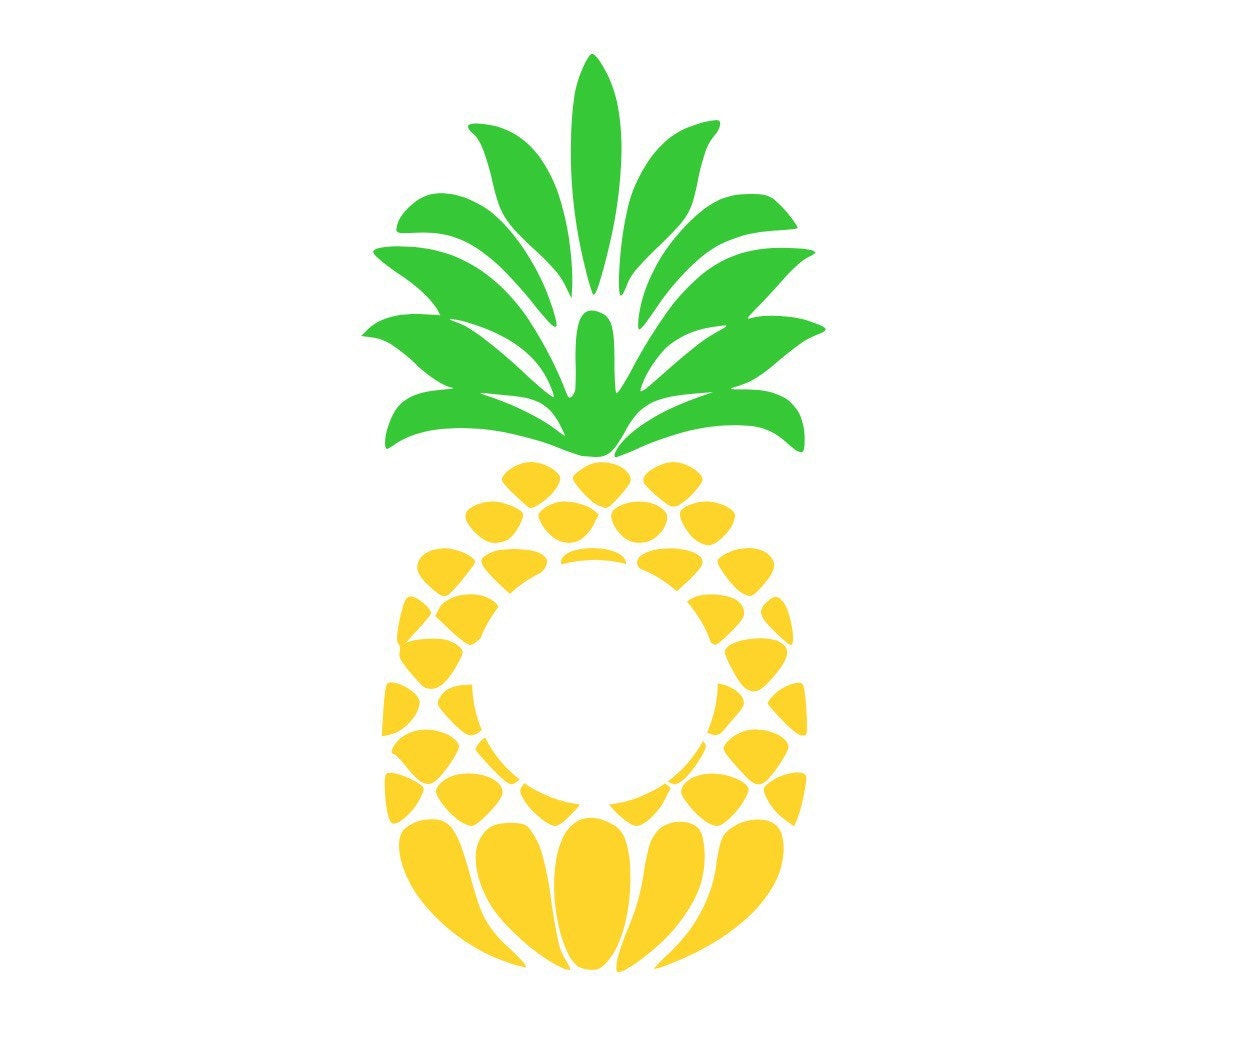 Download Pineapple Monogram Frame SVG Cut File from ...